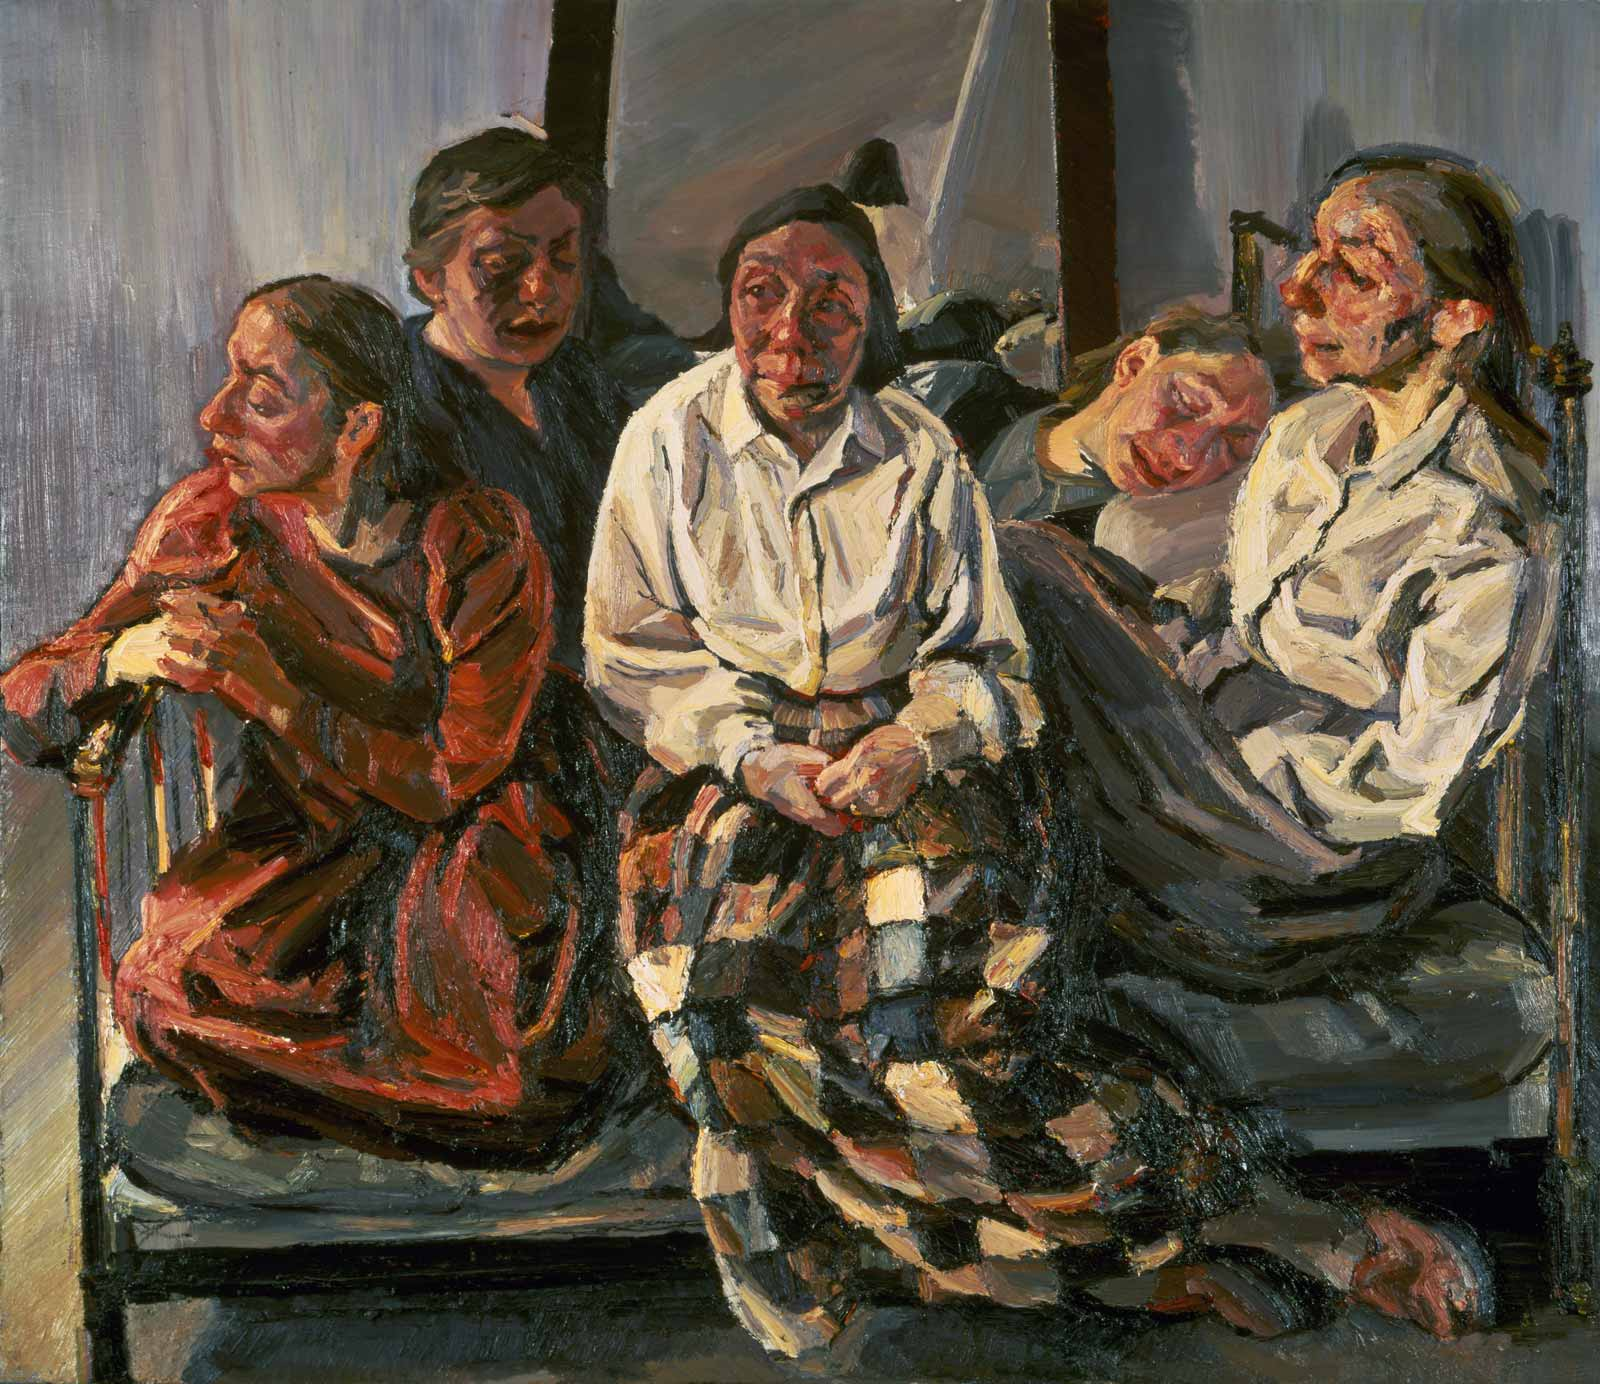 Celia Paul, Family Group, 1984–1986 (courtesy of the artist and Victoria Miro Gallery)